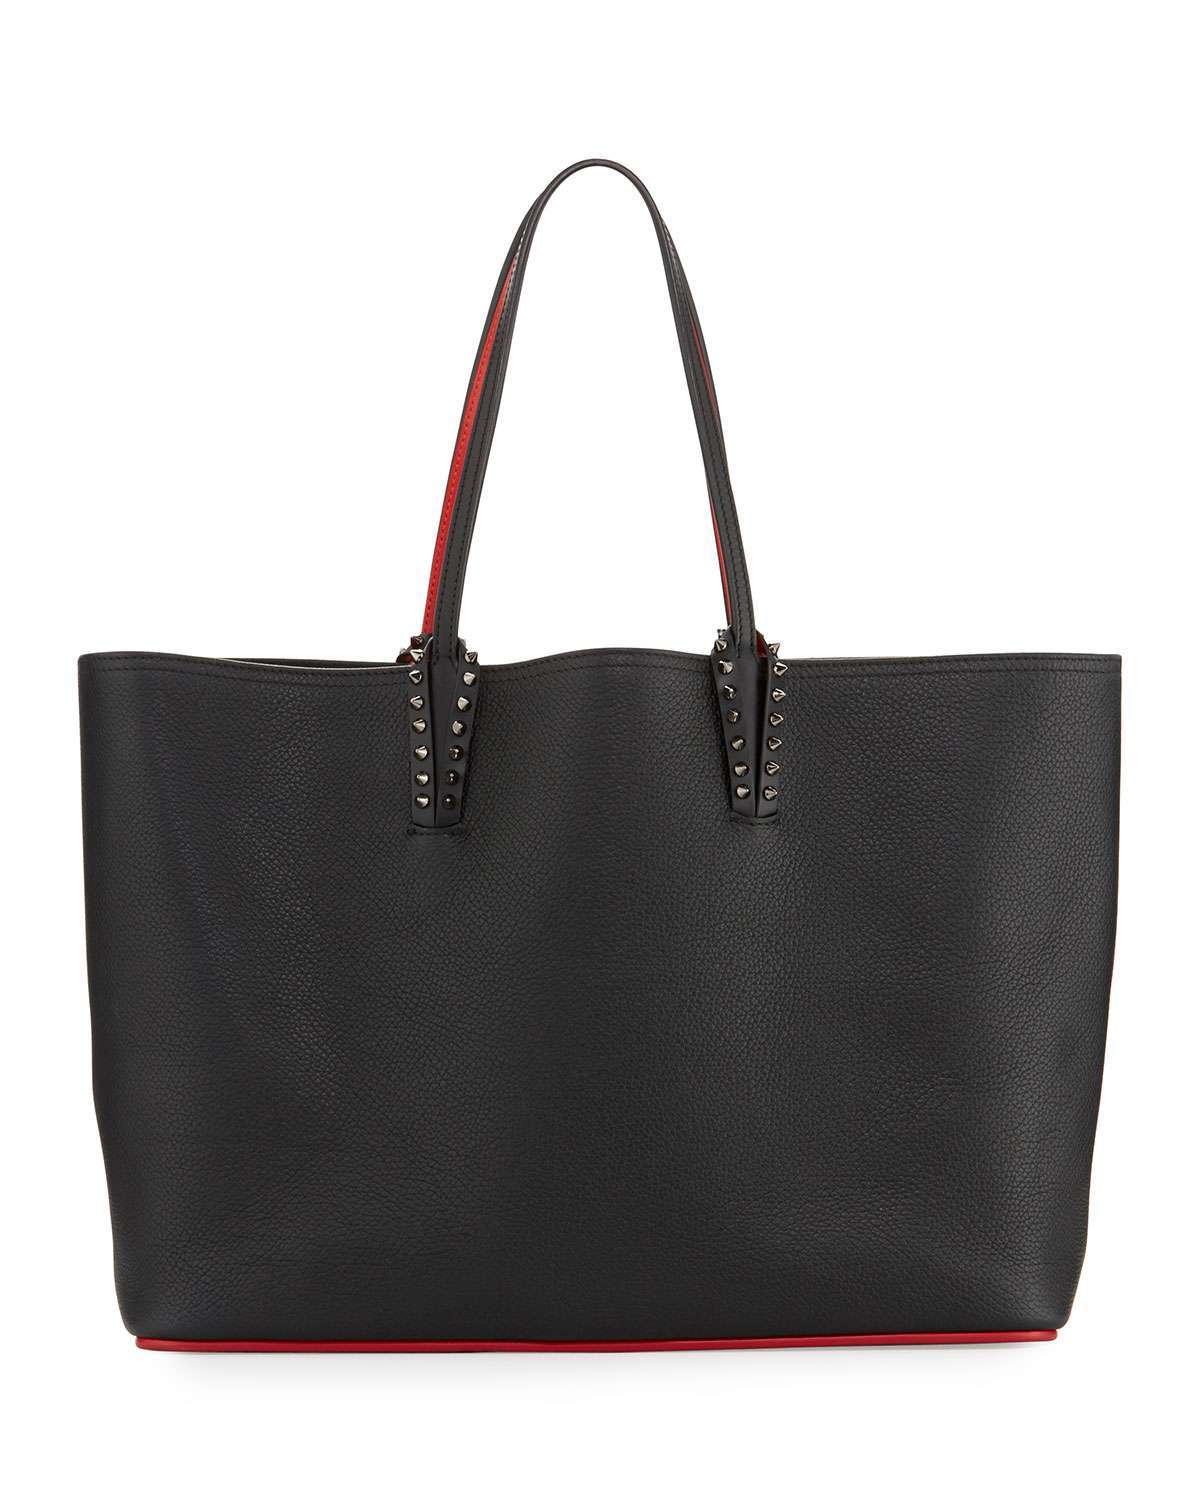 Shopping bag Christian Louboutin